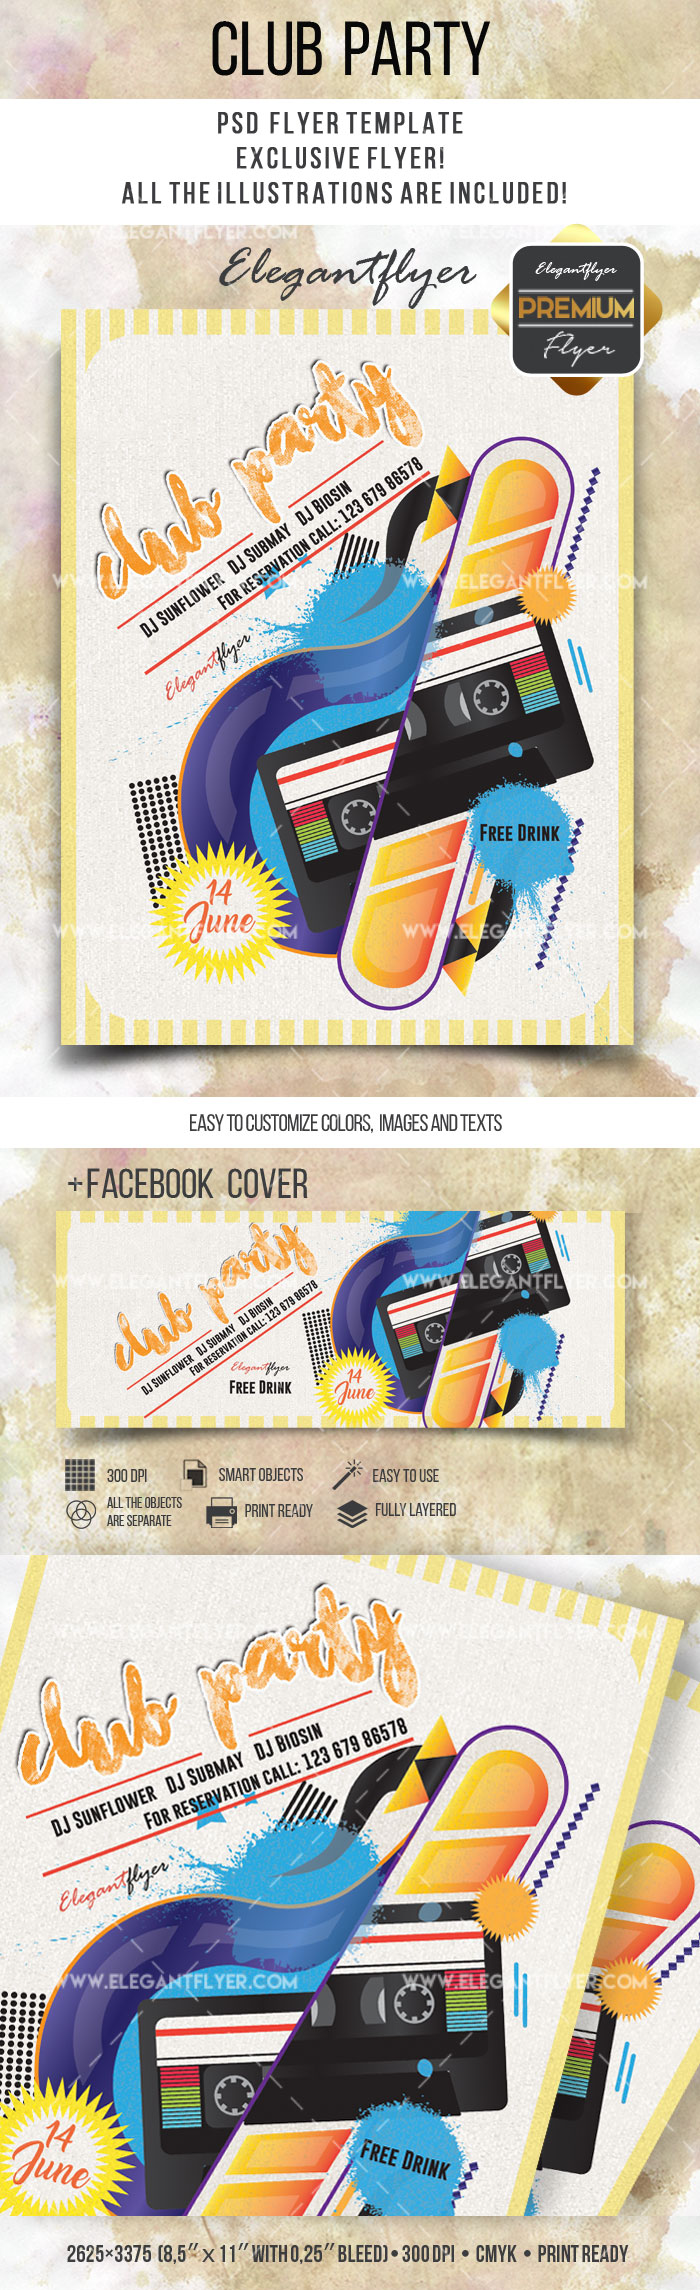 Flyer Template for Club Party Invitation